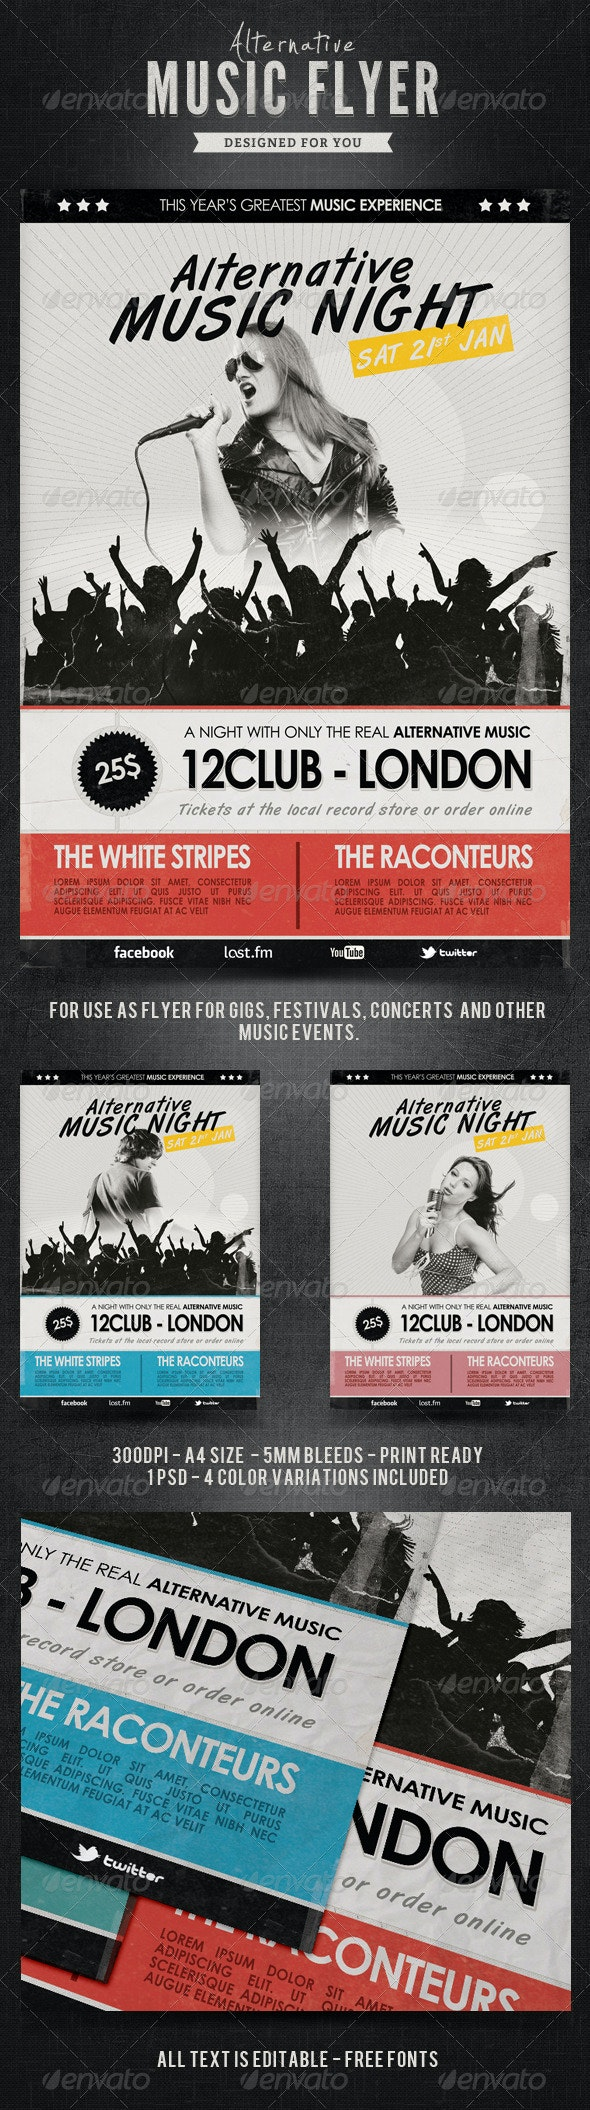 Retro Alternative Flyer / Poster - Concerts Events